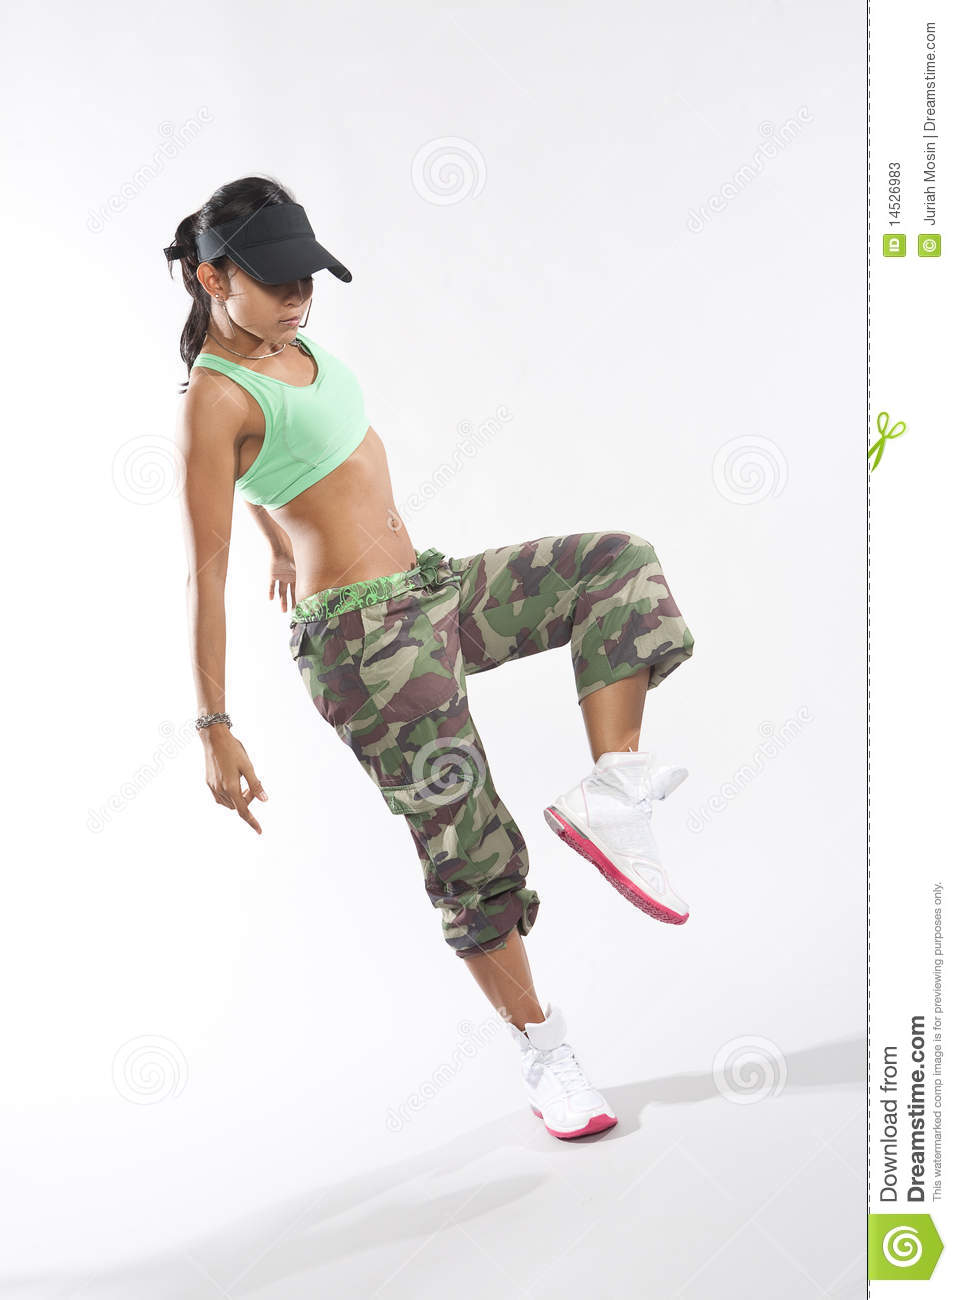 Cool Hip Hop Dance Poses Woman dancer in hip hop attire